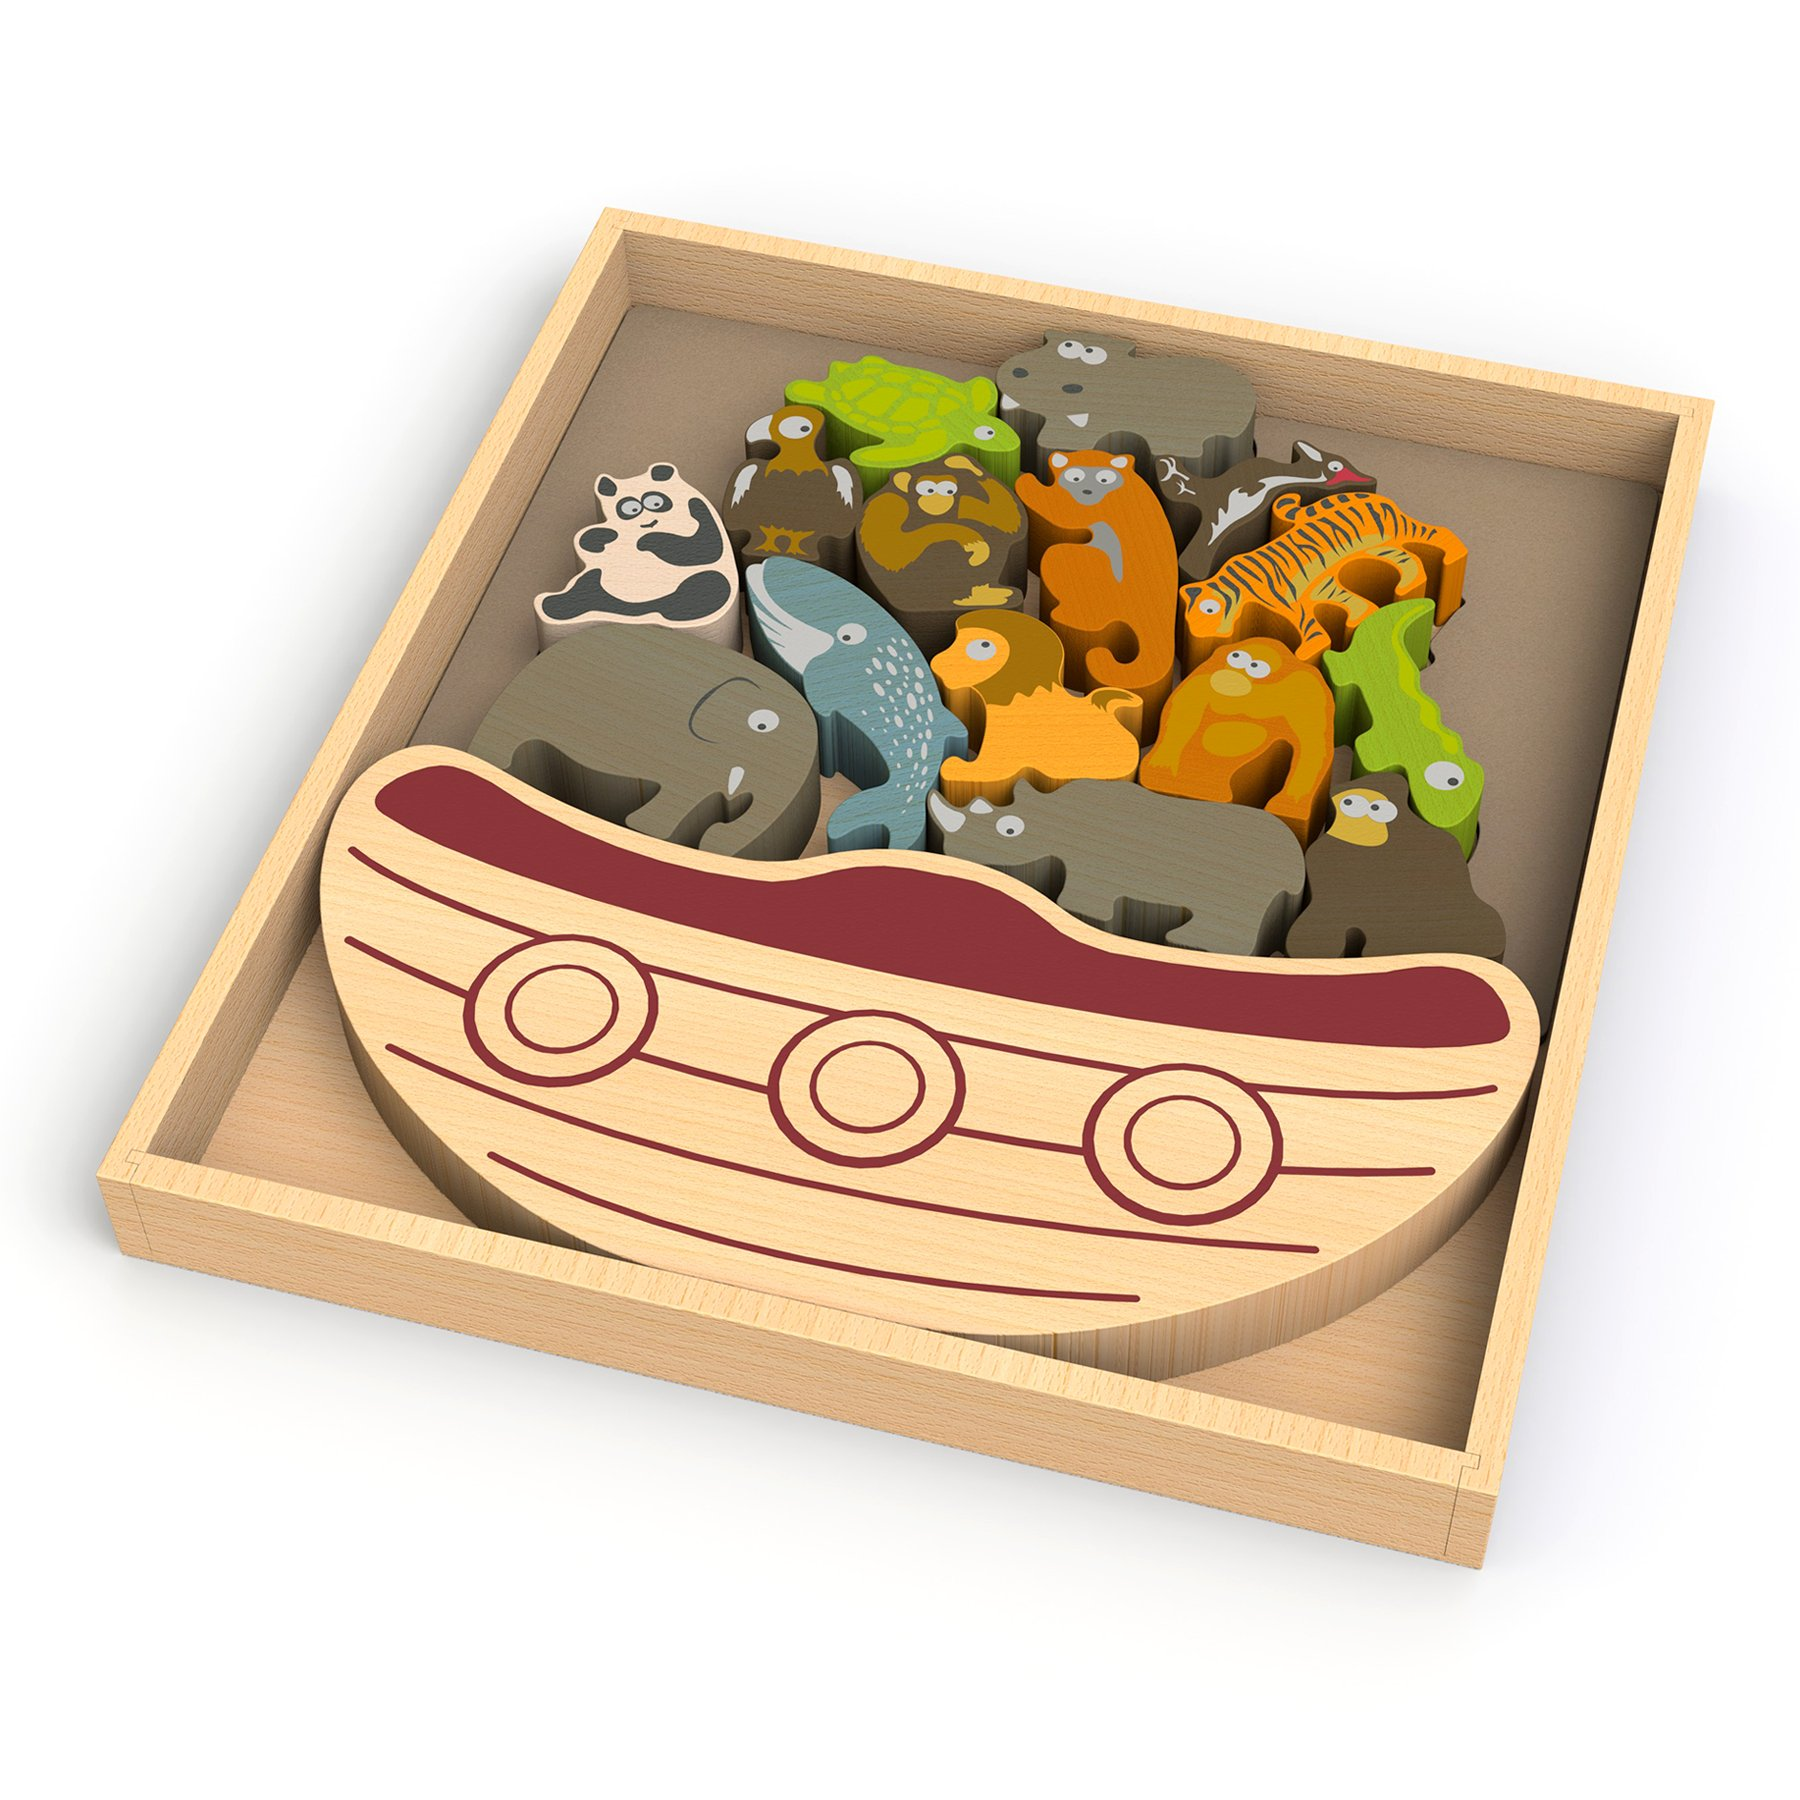 BeginAgain Balance Boat Endangered Animals Game, Make Learning Fun and Help Spark Your Child's Imagination, Helps Promote Active Play and Develop Motor Skills (For Kids 3 and Up)